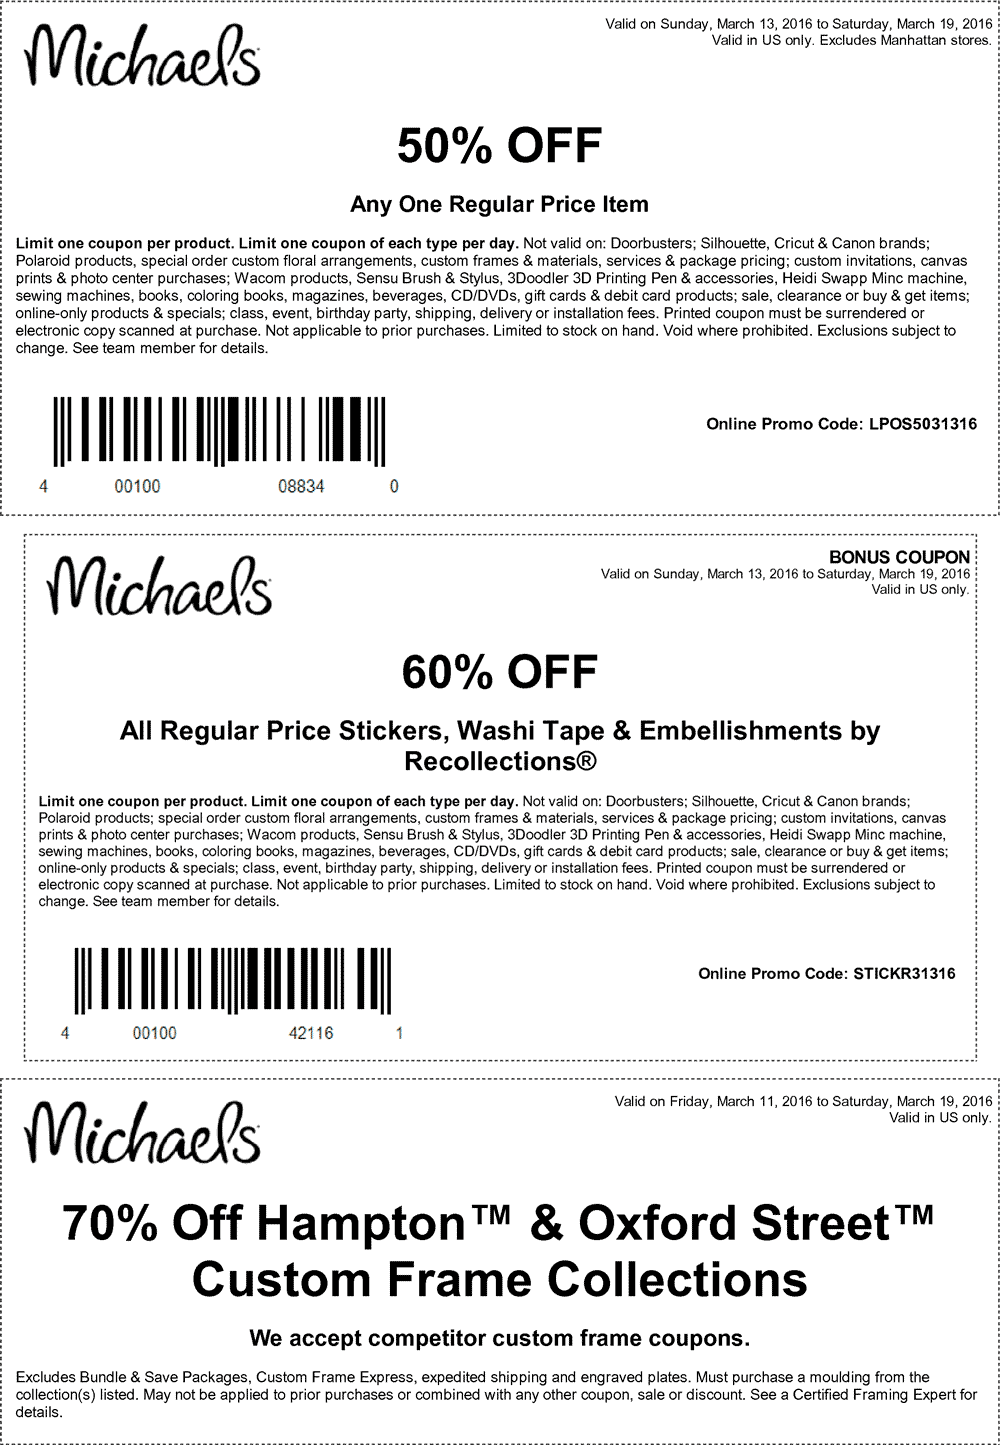 Michaels Coupon May 2018 50% off a single item at Michaels, or online via promo code LPOS5031316